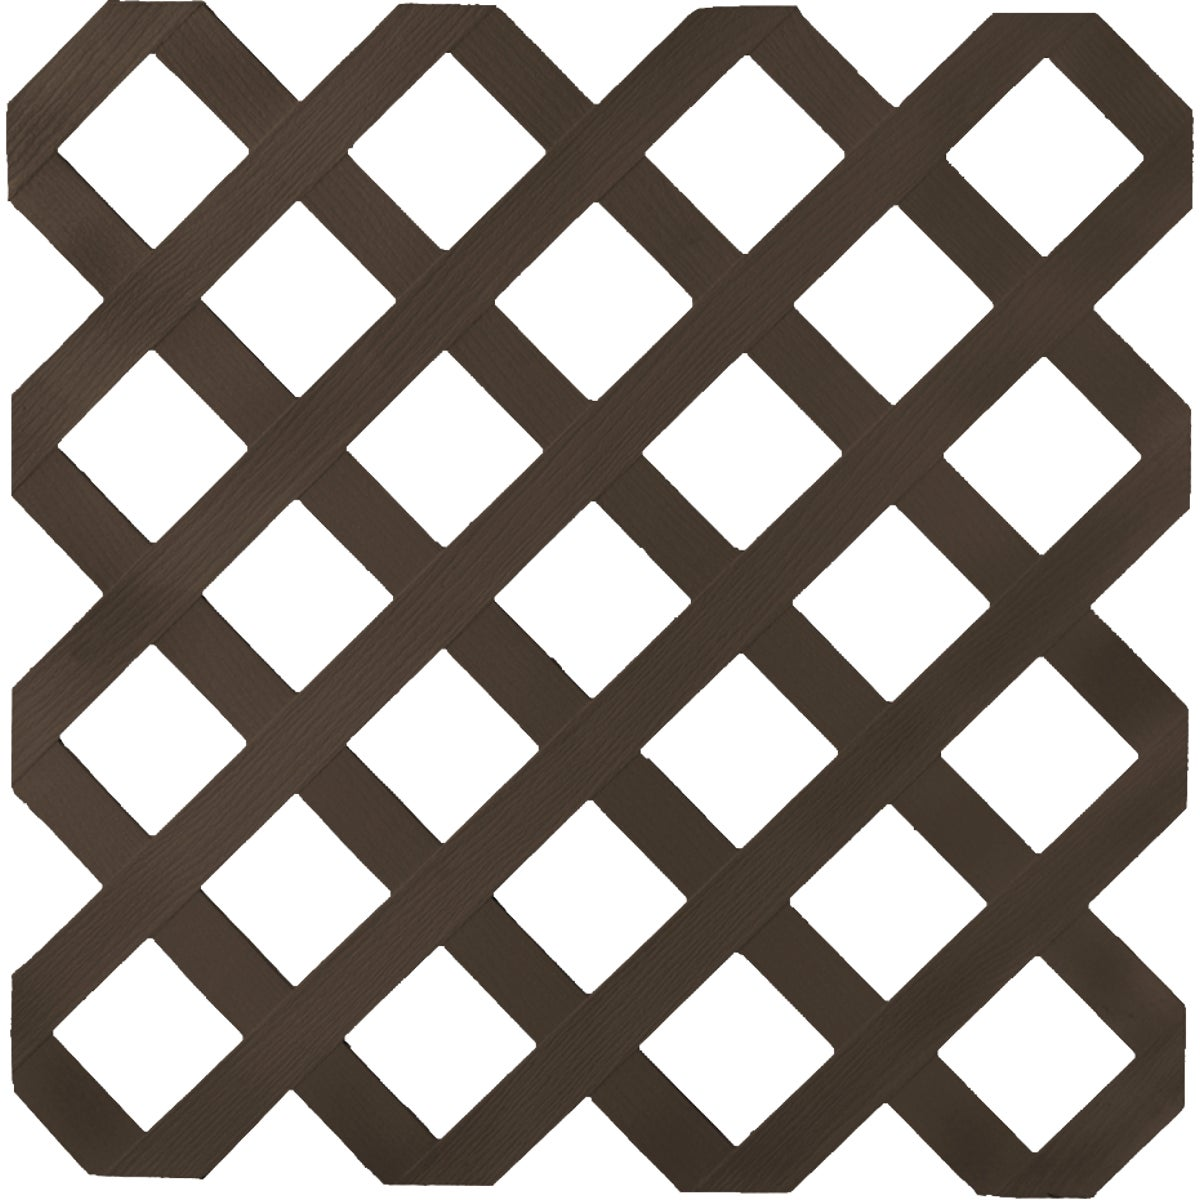 4X8 DK BRN LATTICE - 79911 by UfpiPlstc Lattice